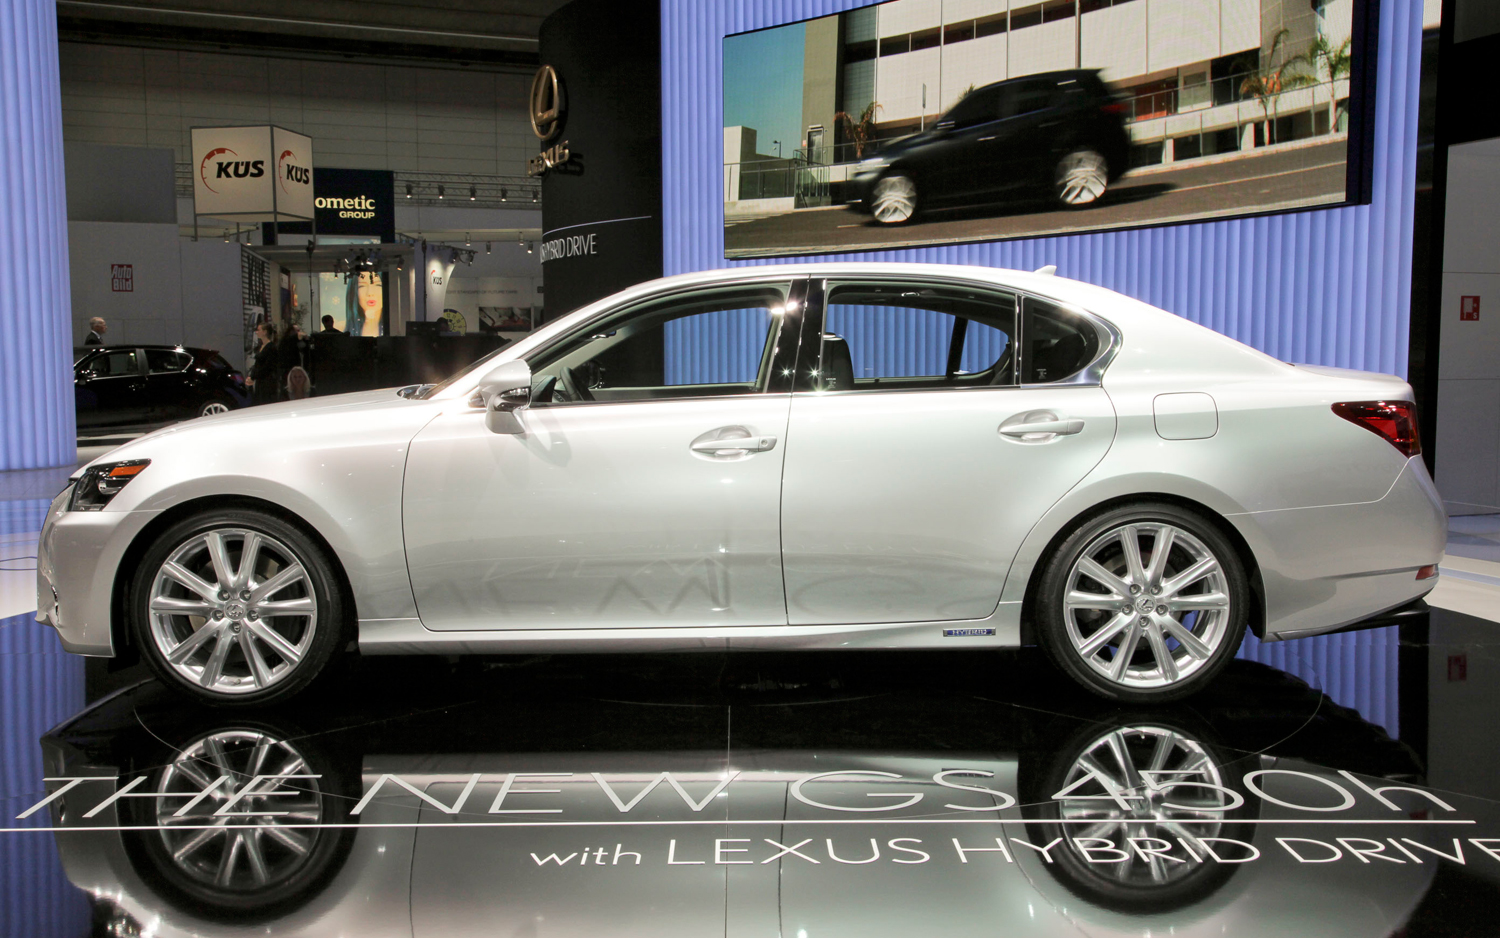 2014 lexus gs 450h information and photos zombiedrive 2014 lexus gs 450h 13 lexus gs 450h 13 sciox Images